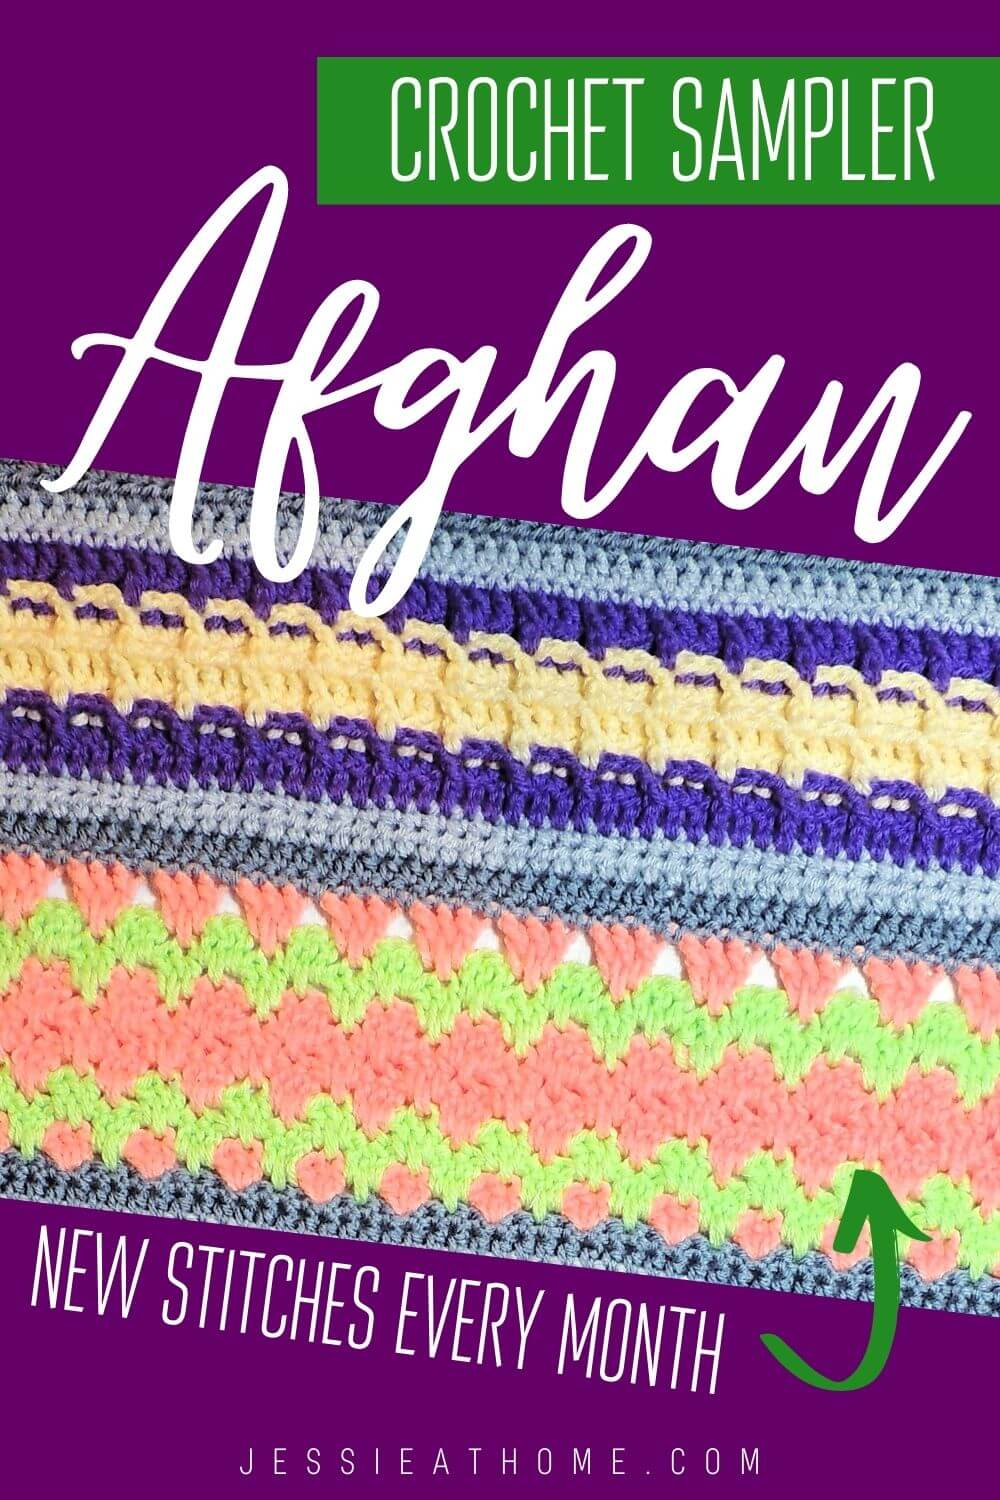 Give This Beautiful Crochet Blanket for a Winter Holiday